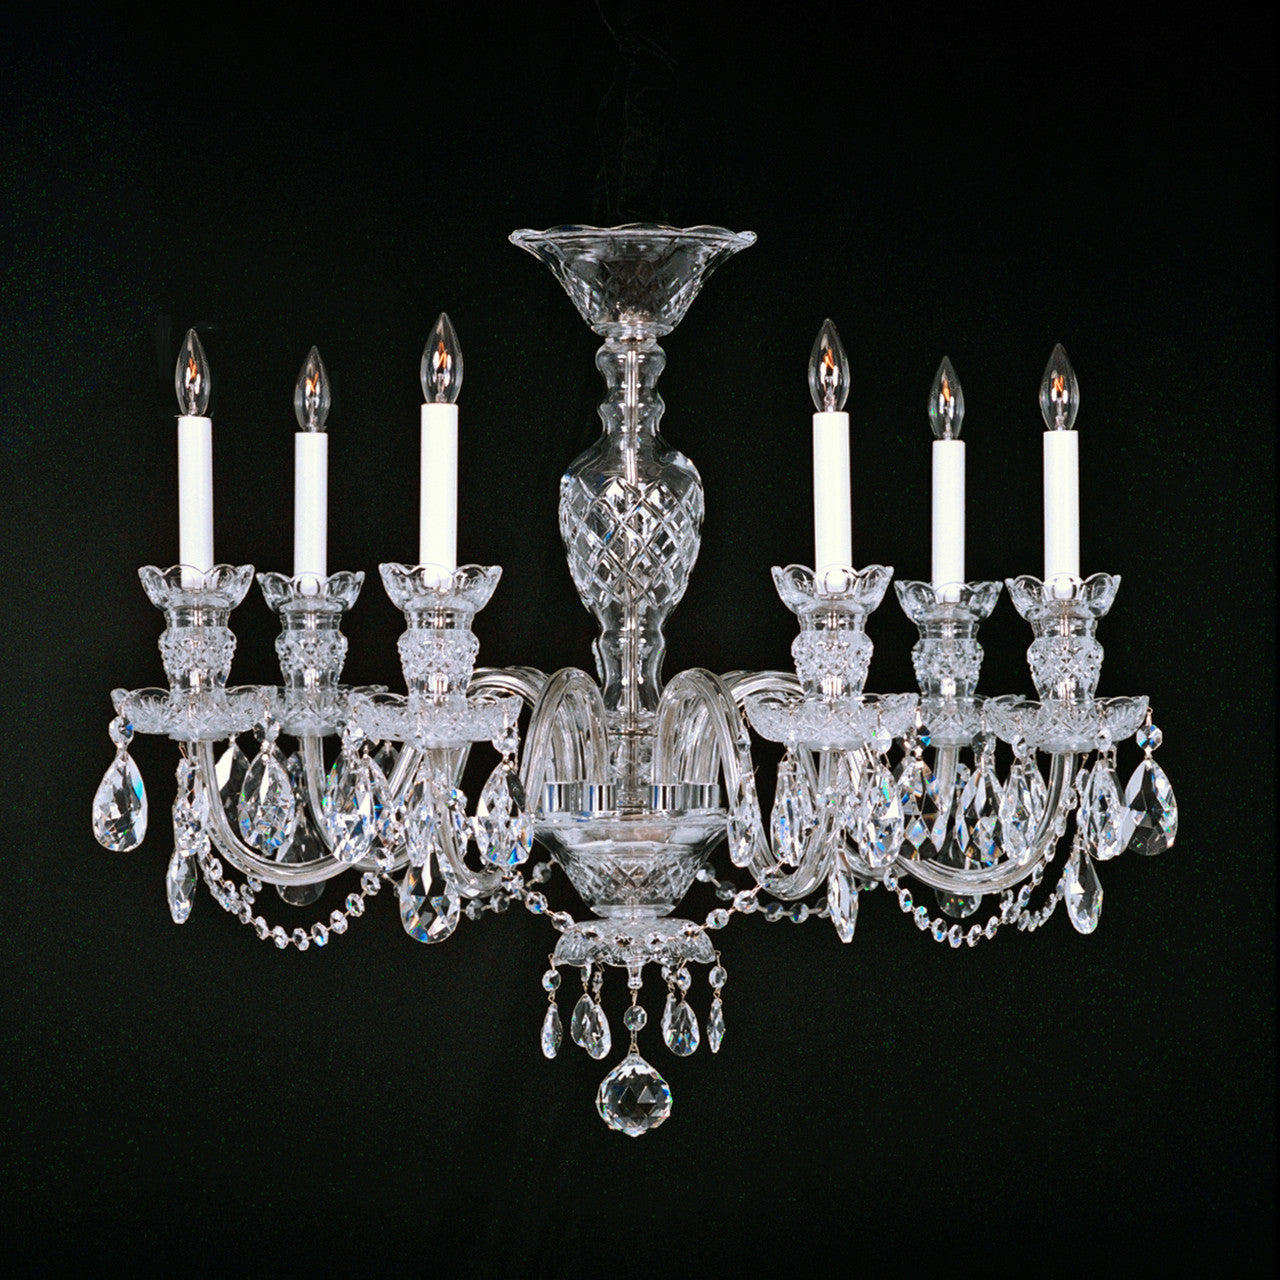 Crystal chandeliers and wall sconces direct free shipping crystal chandelier chesapeake t arubaitofo Gallery